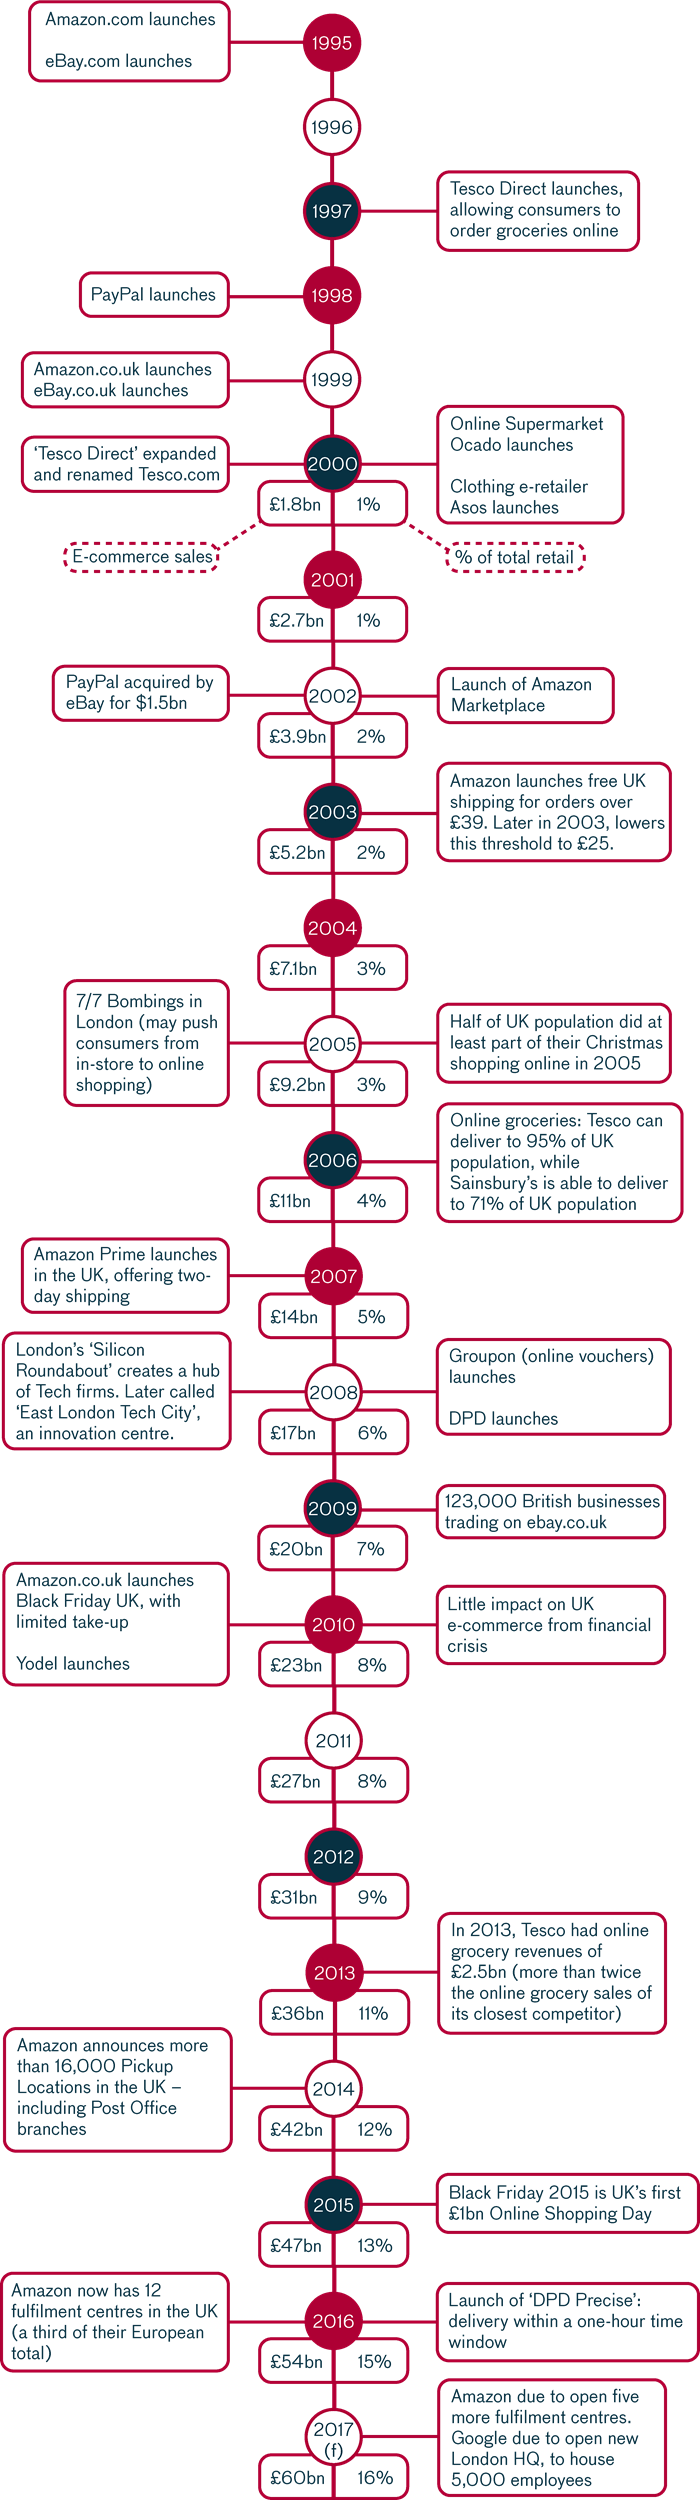 Infographic UK e-commerce timeline